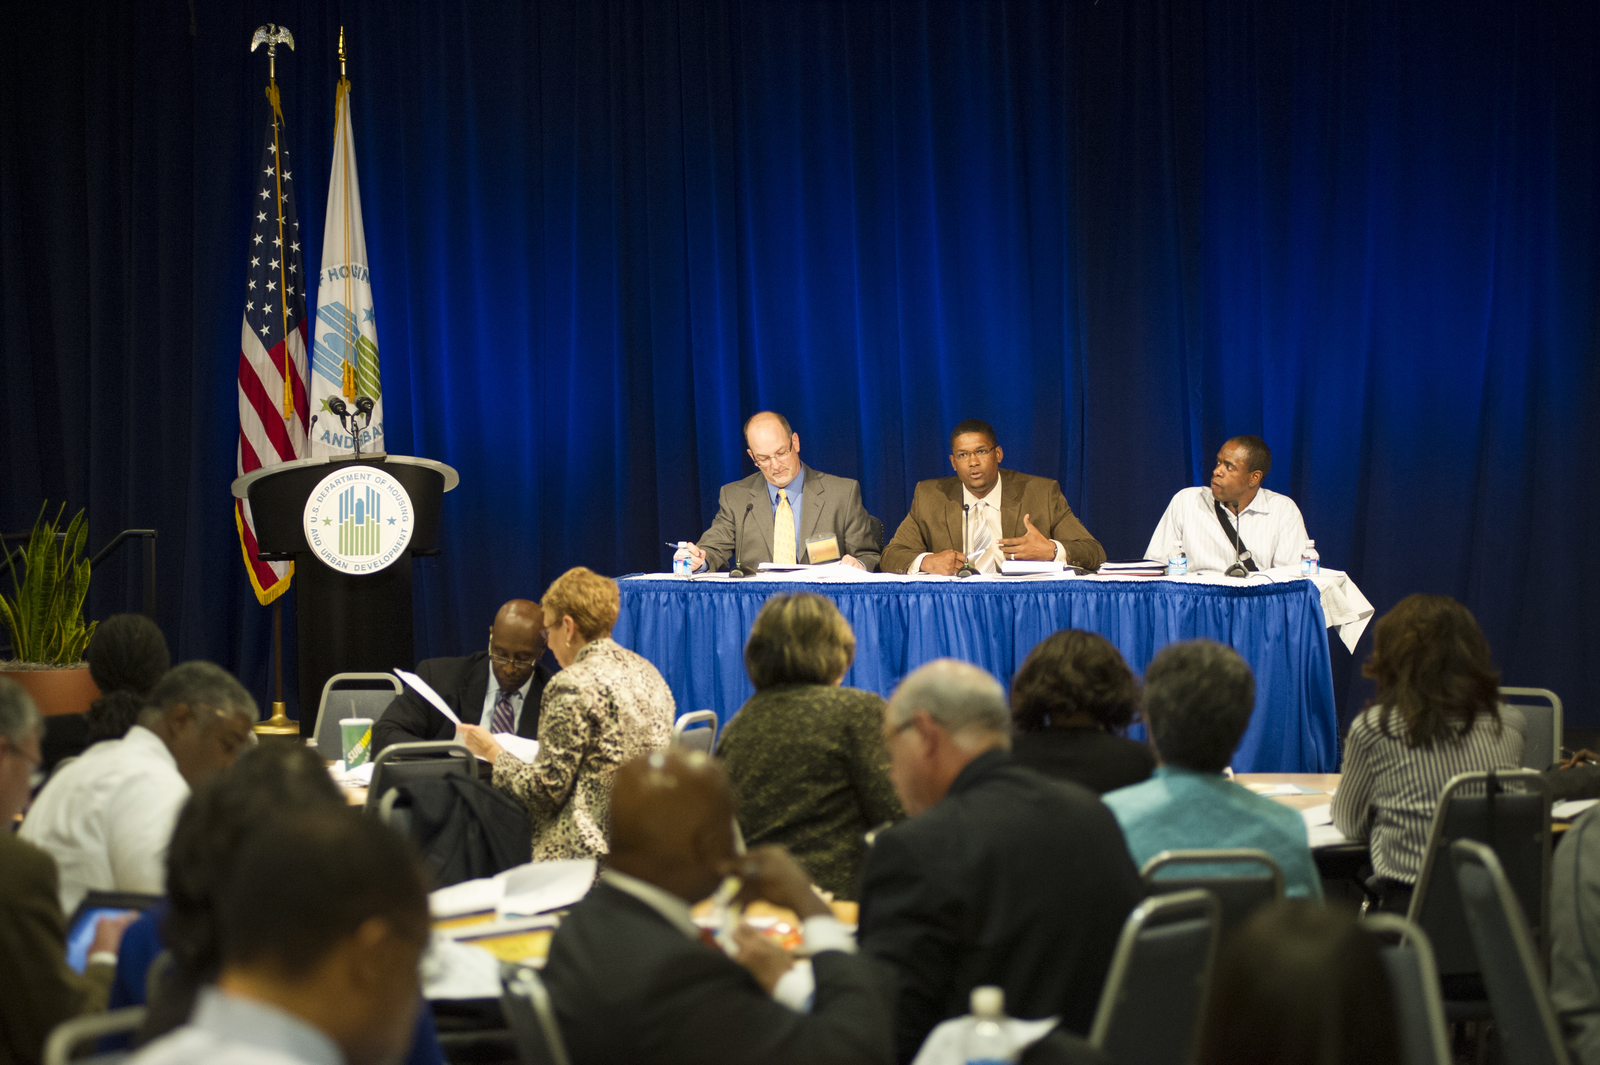 Senior executive service (SES) officials summit